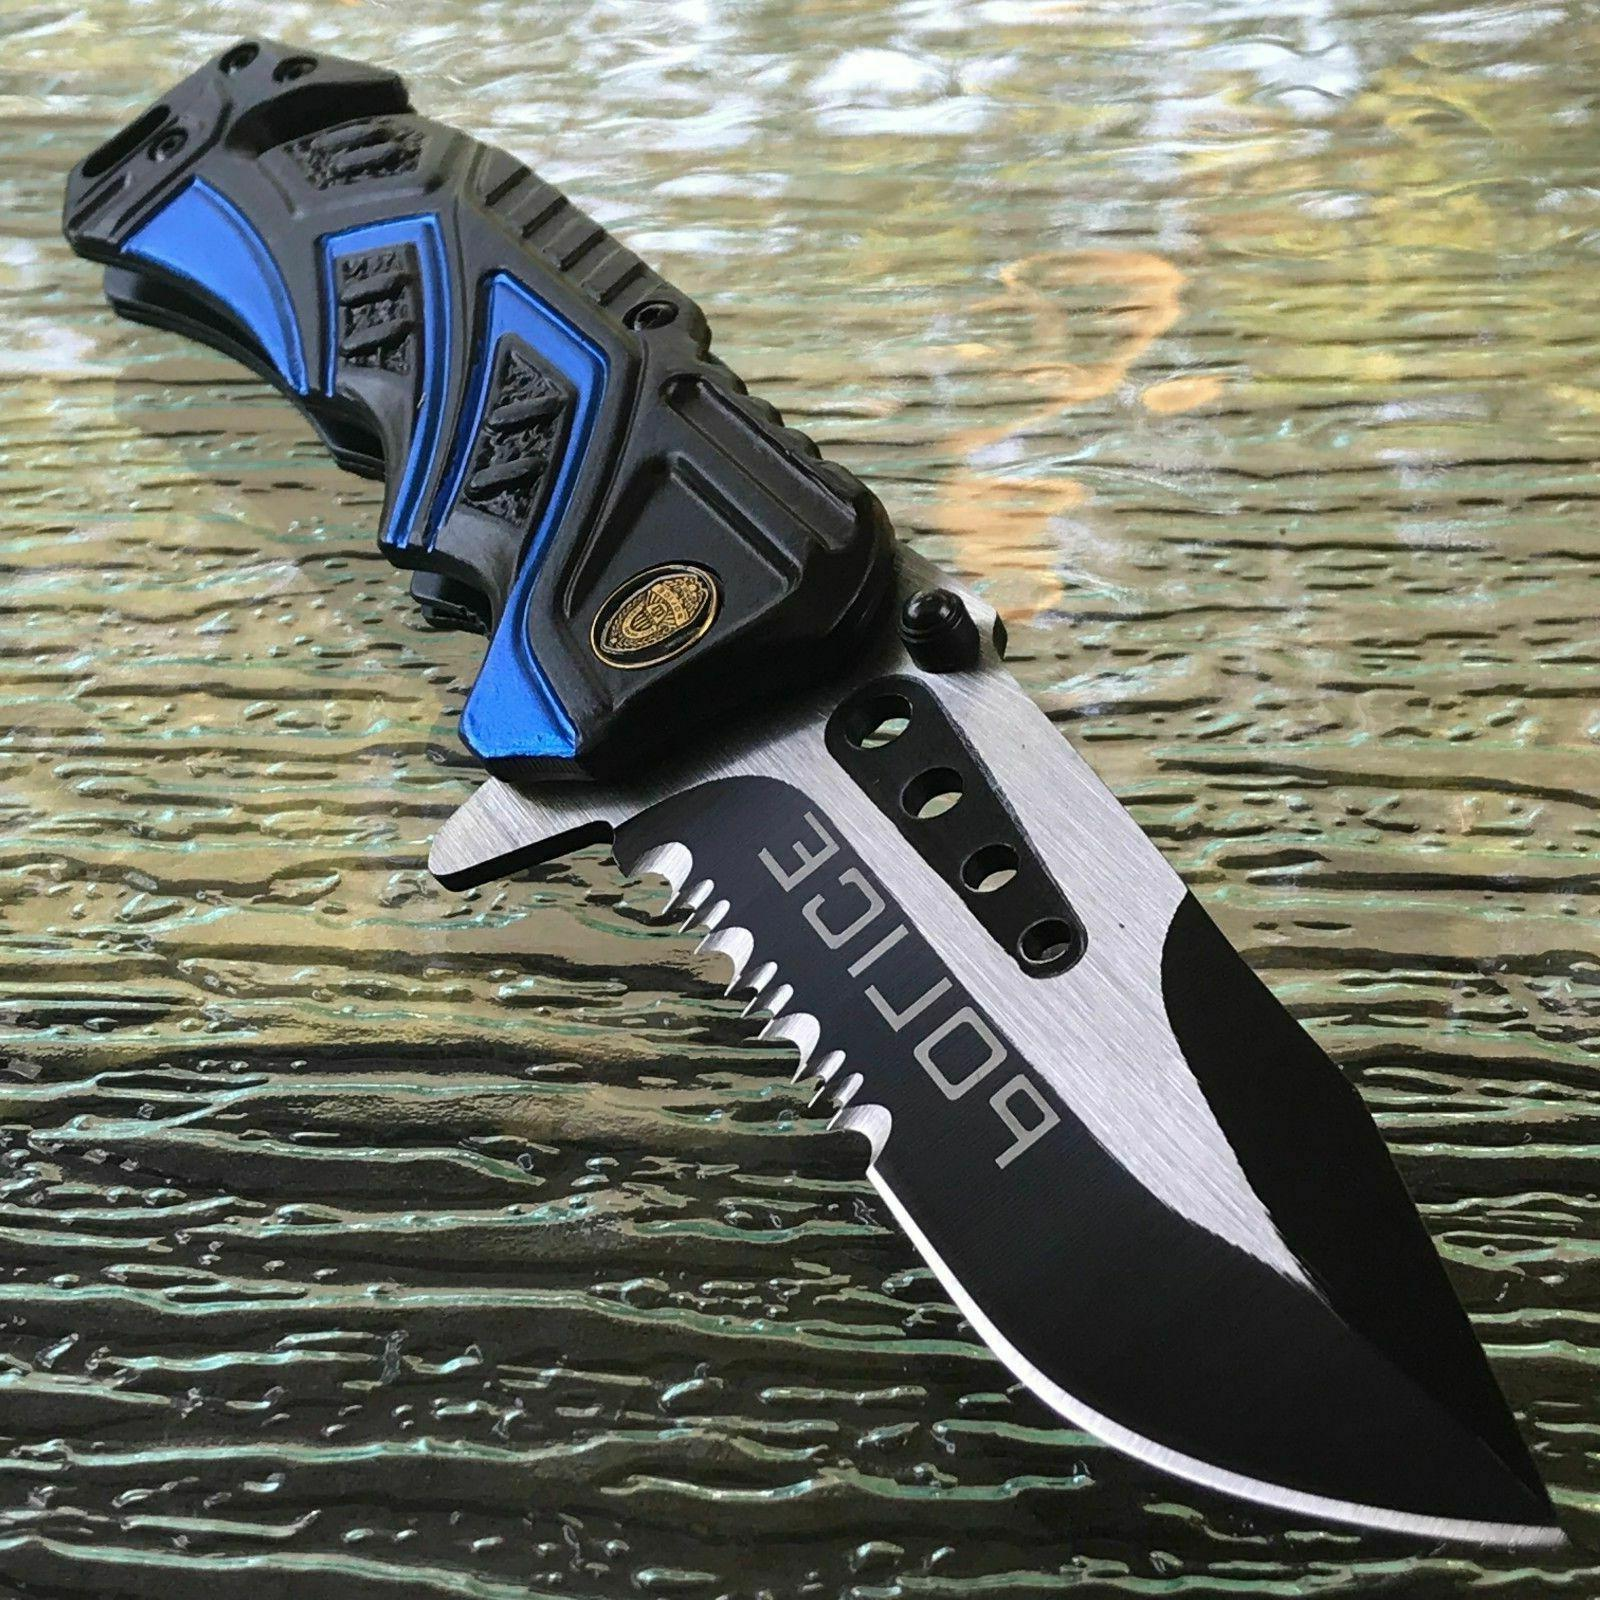 MTECH POLICE SPRING ASSISTED POCKET KNIFE Open